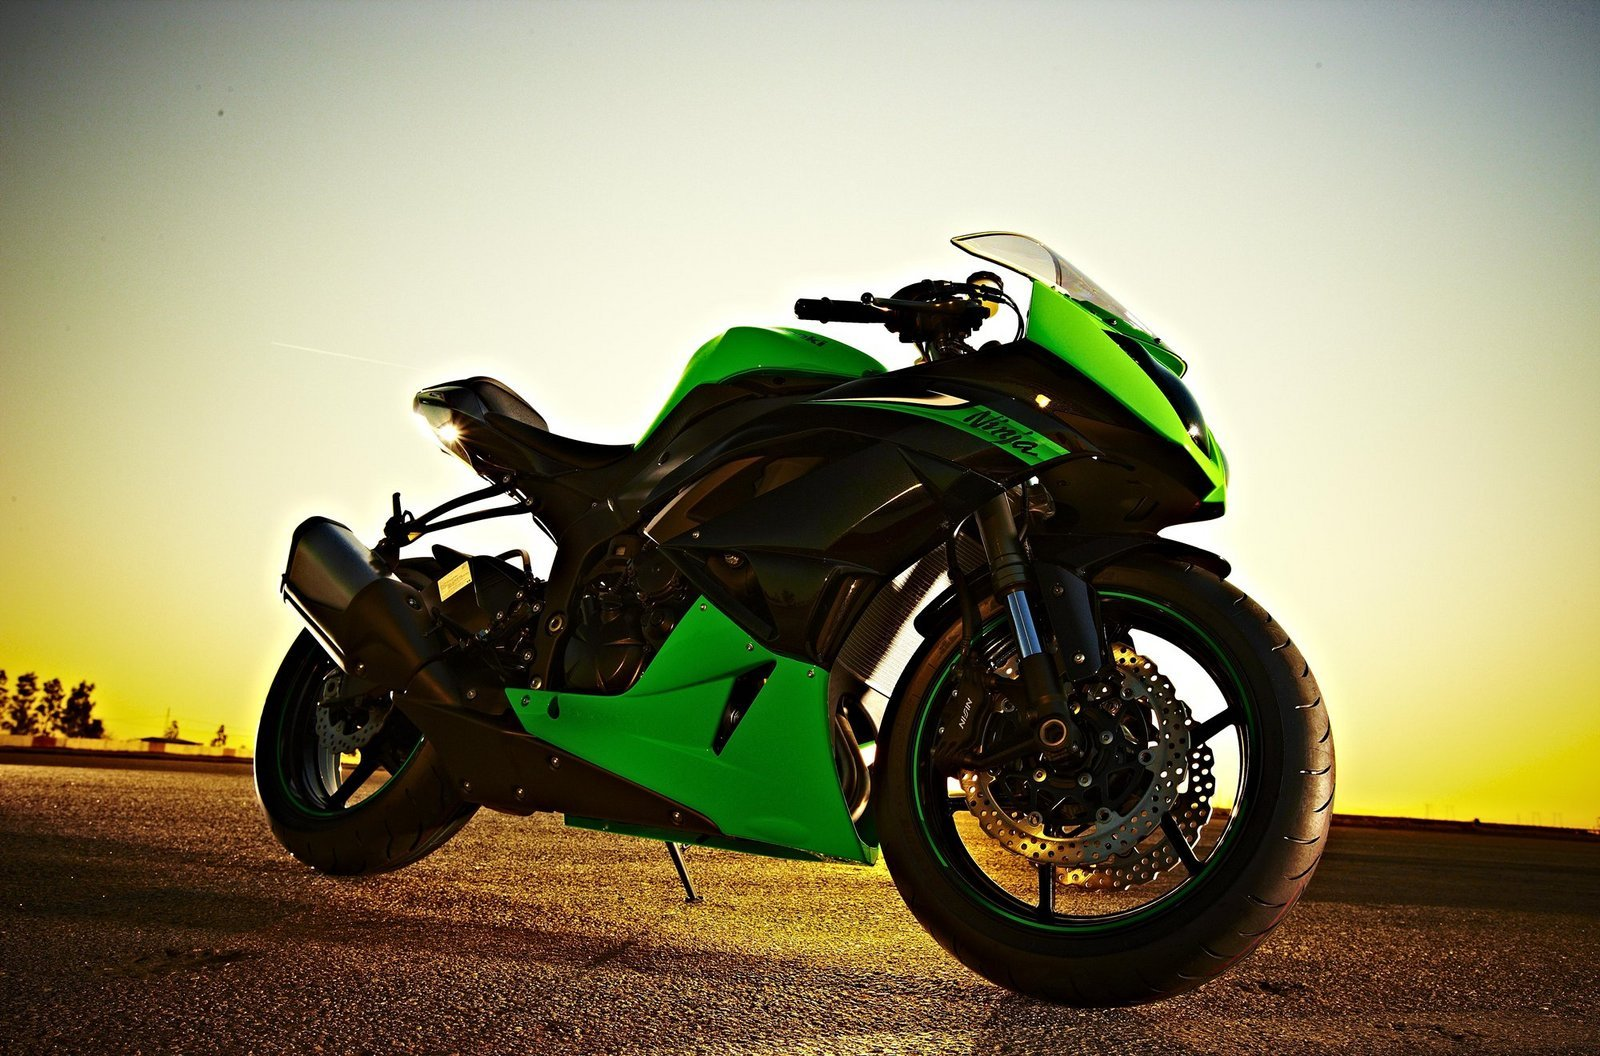 2010 kawasaki ninja zx 6r picture 344913 motorcycle review top speed. Black Bedroom Furniture Sets. Home Design Ideas